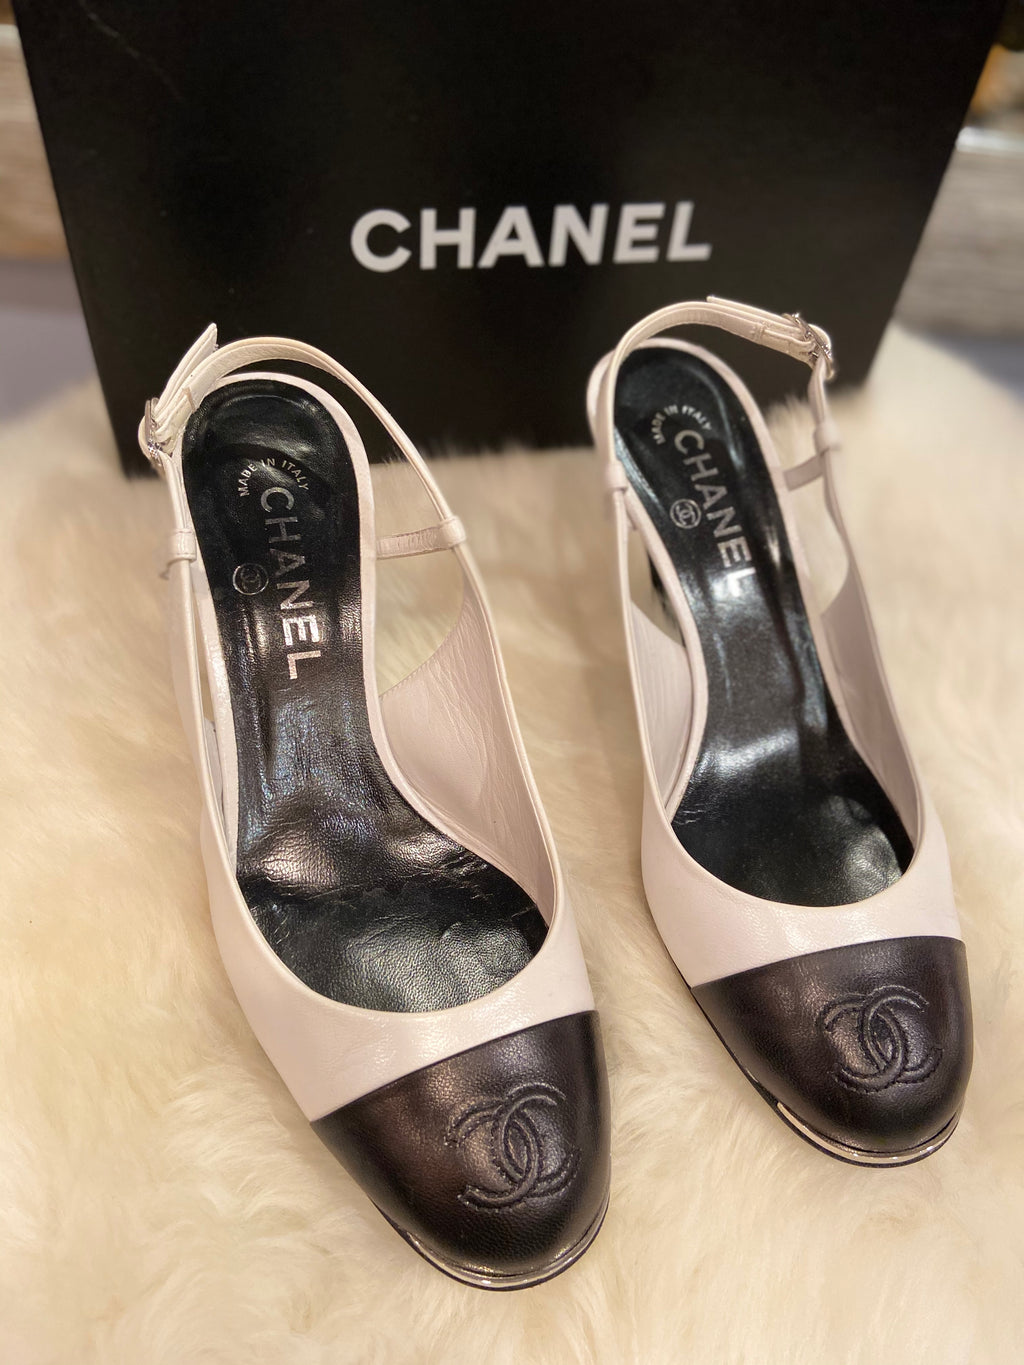 Chanel sWhite/Black Closed Toe Strap Heels size 39